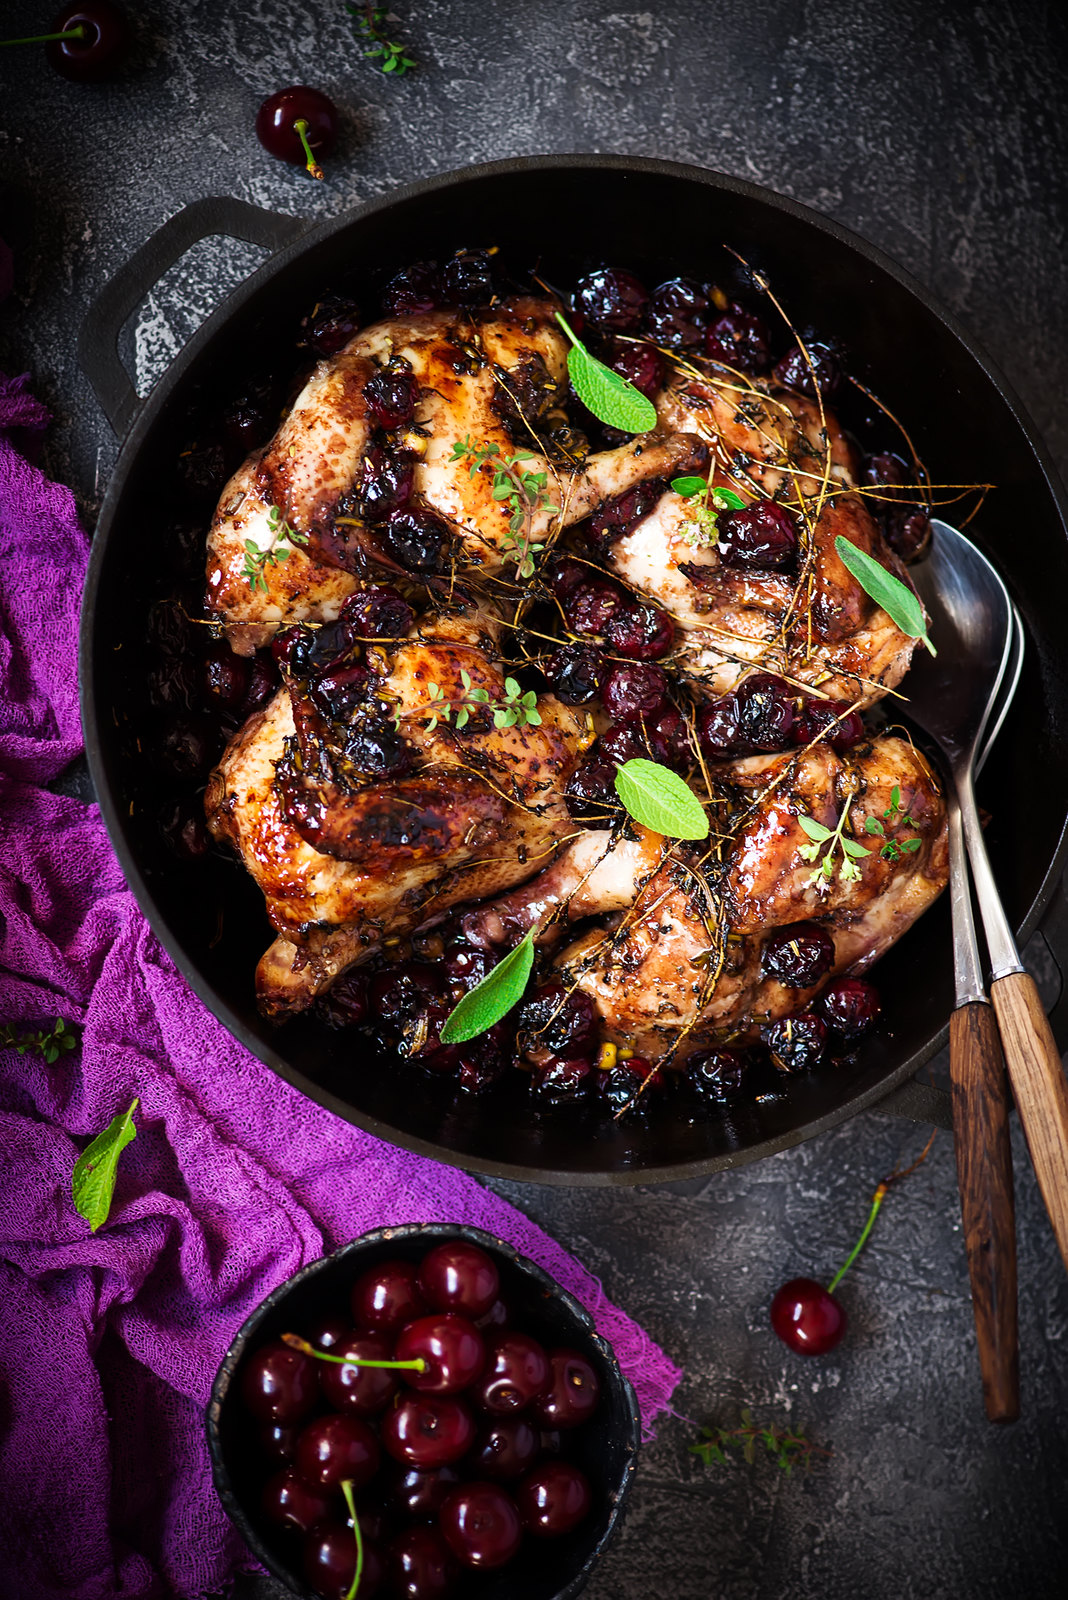 Rosemary Cherry Balsamic Roasted Chicken